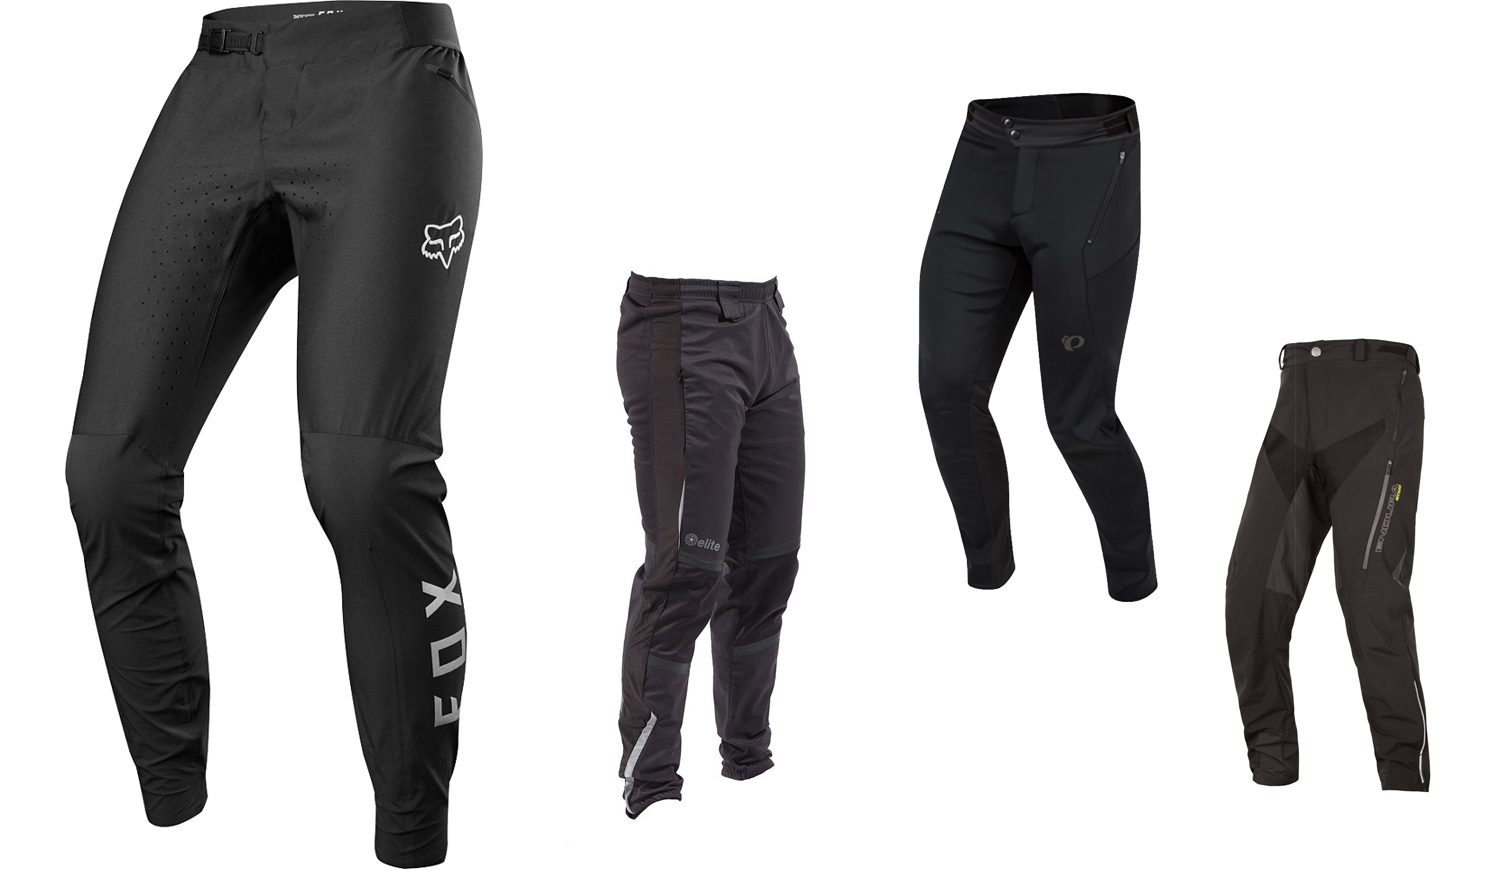 Winter is Coming: Pants Options for Wet and Cold Winter Riding